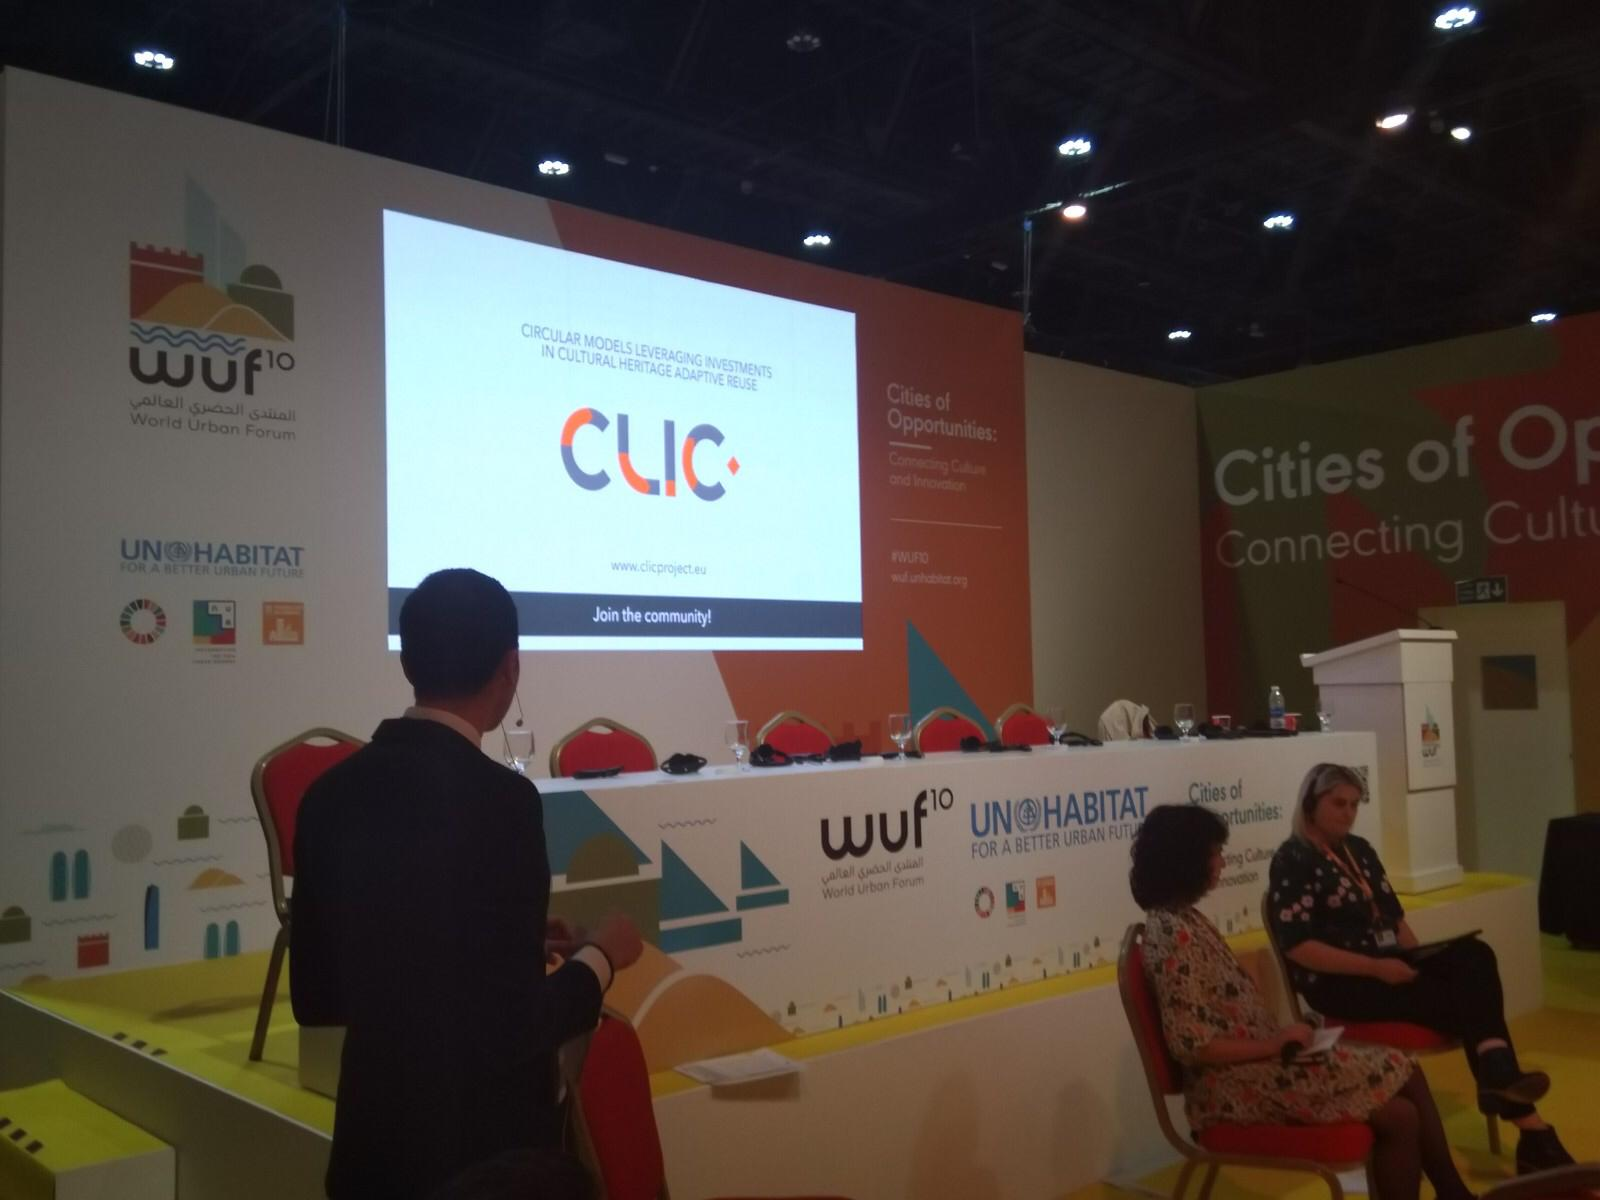 CLIC at the World Urban Forum